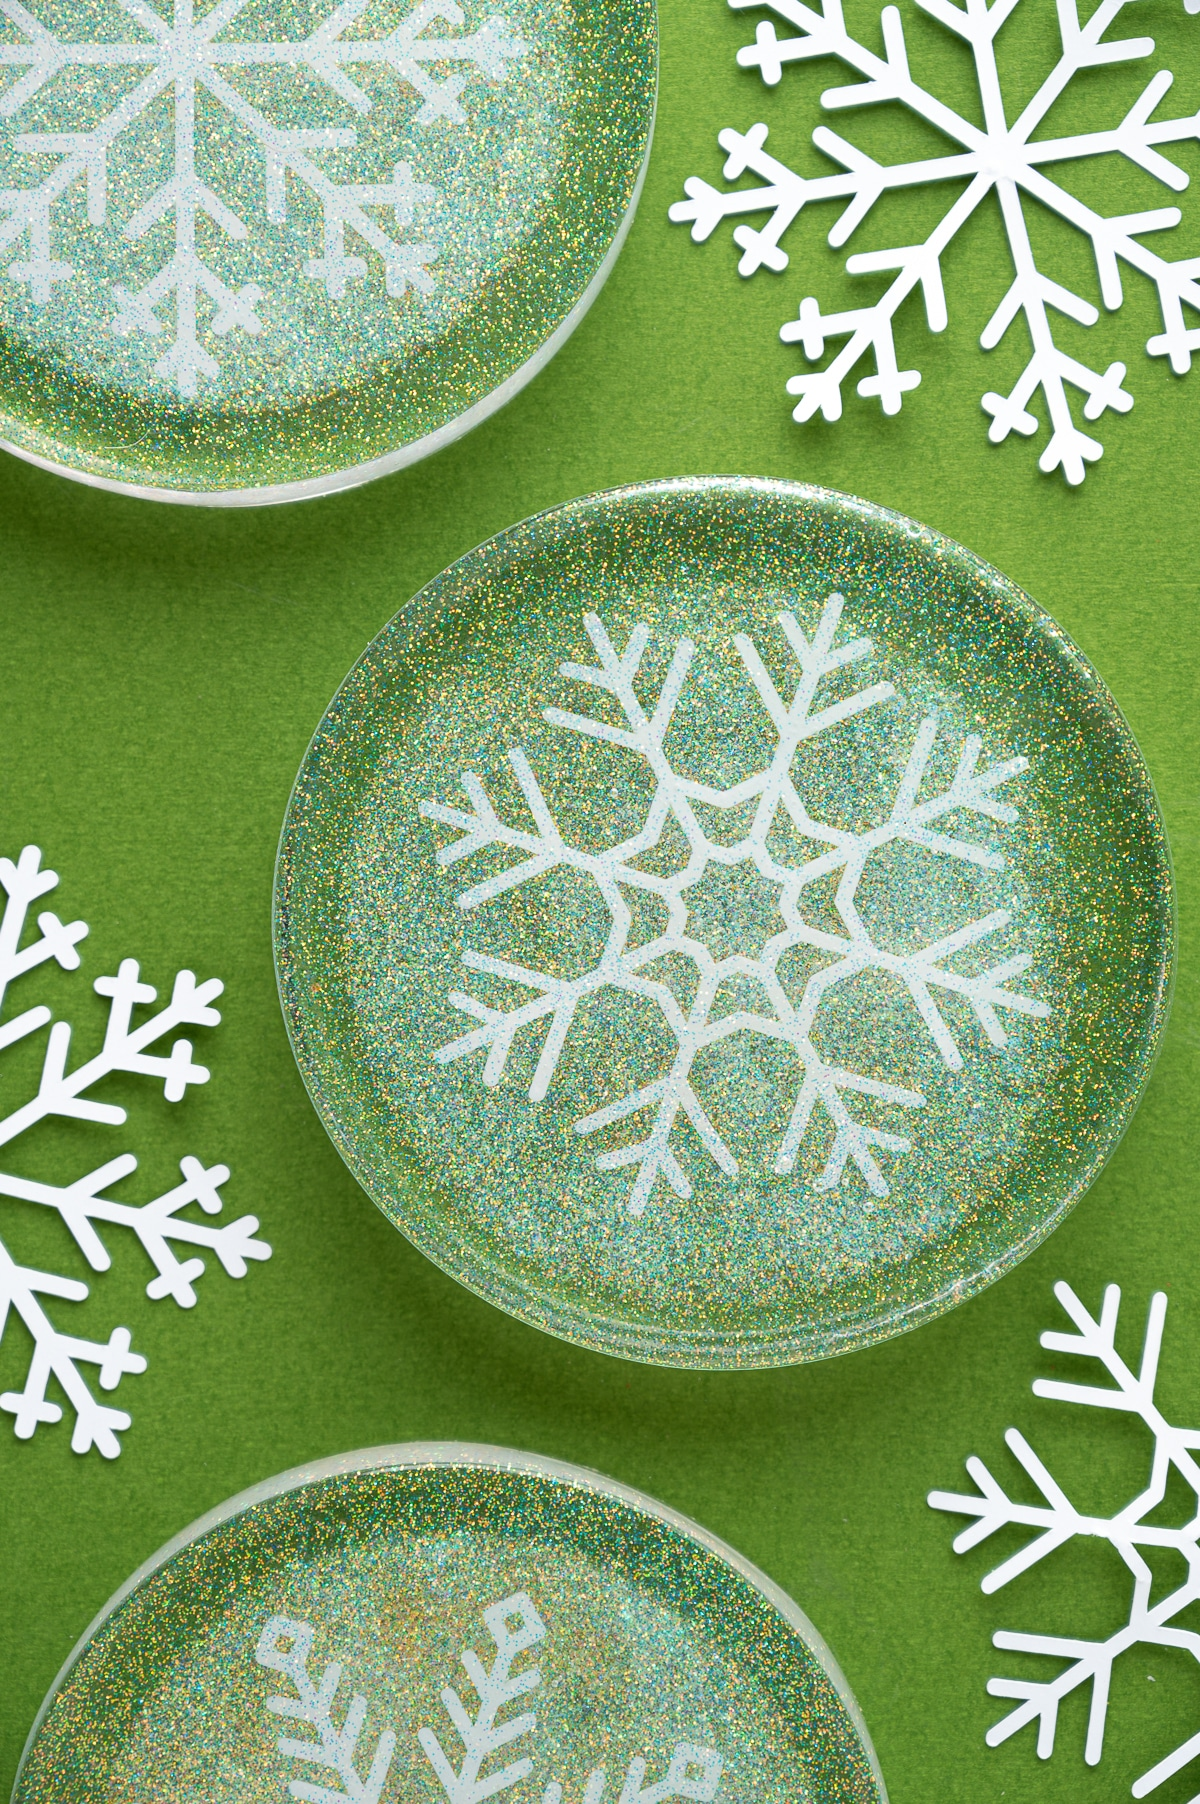 Round resin epoxy coasters with white snowflake cutouts and prismatic glitter on a green background